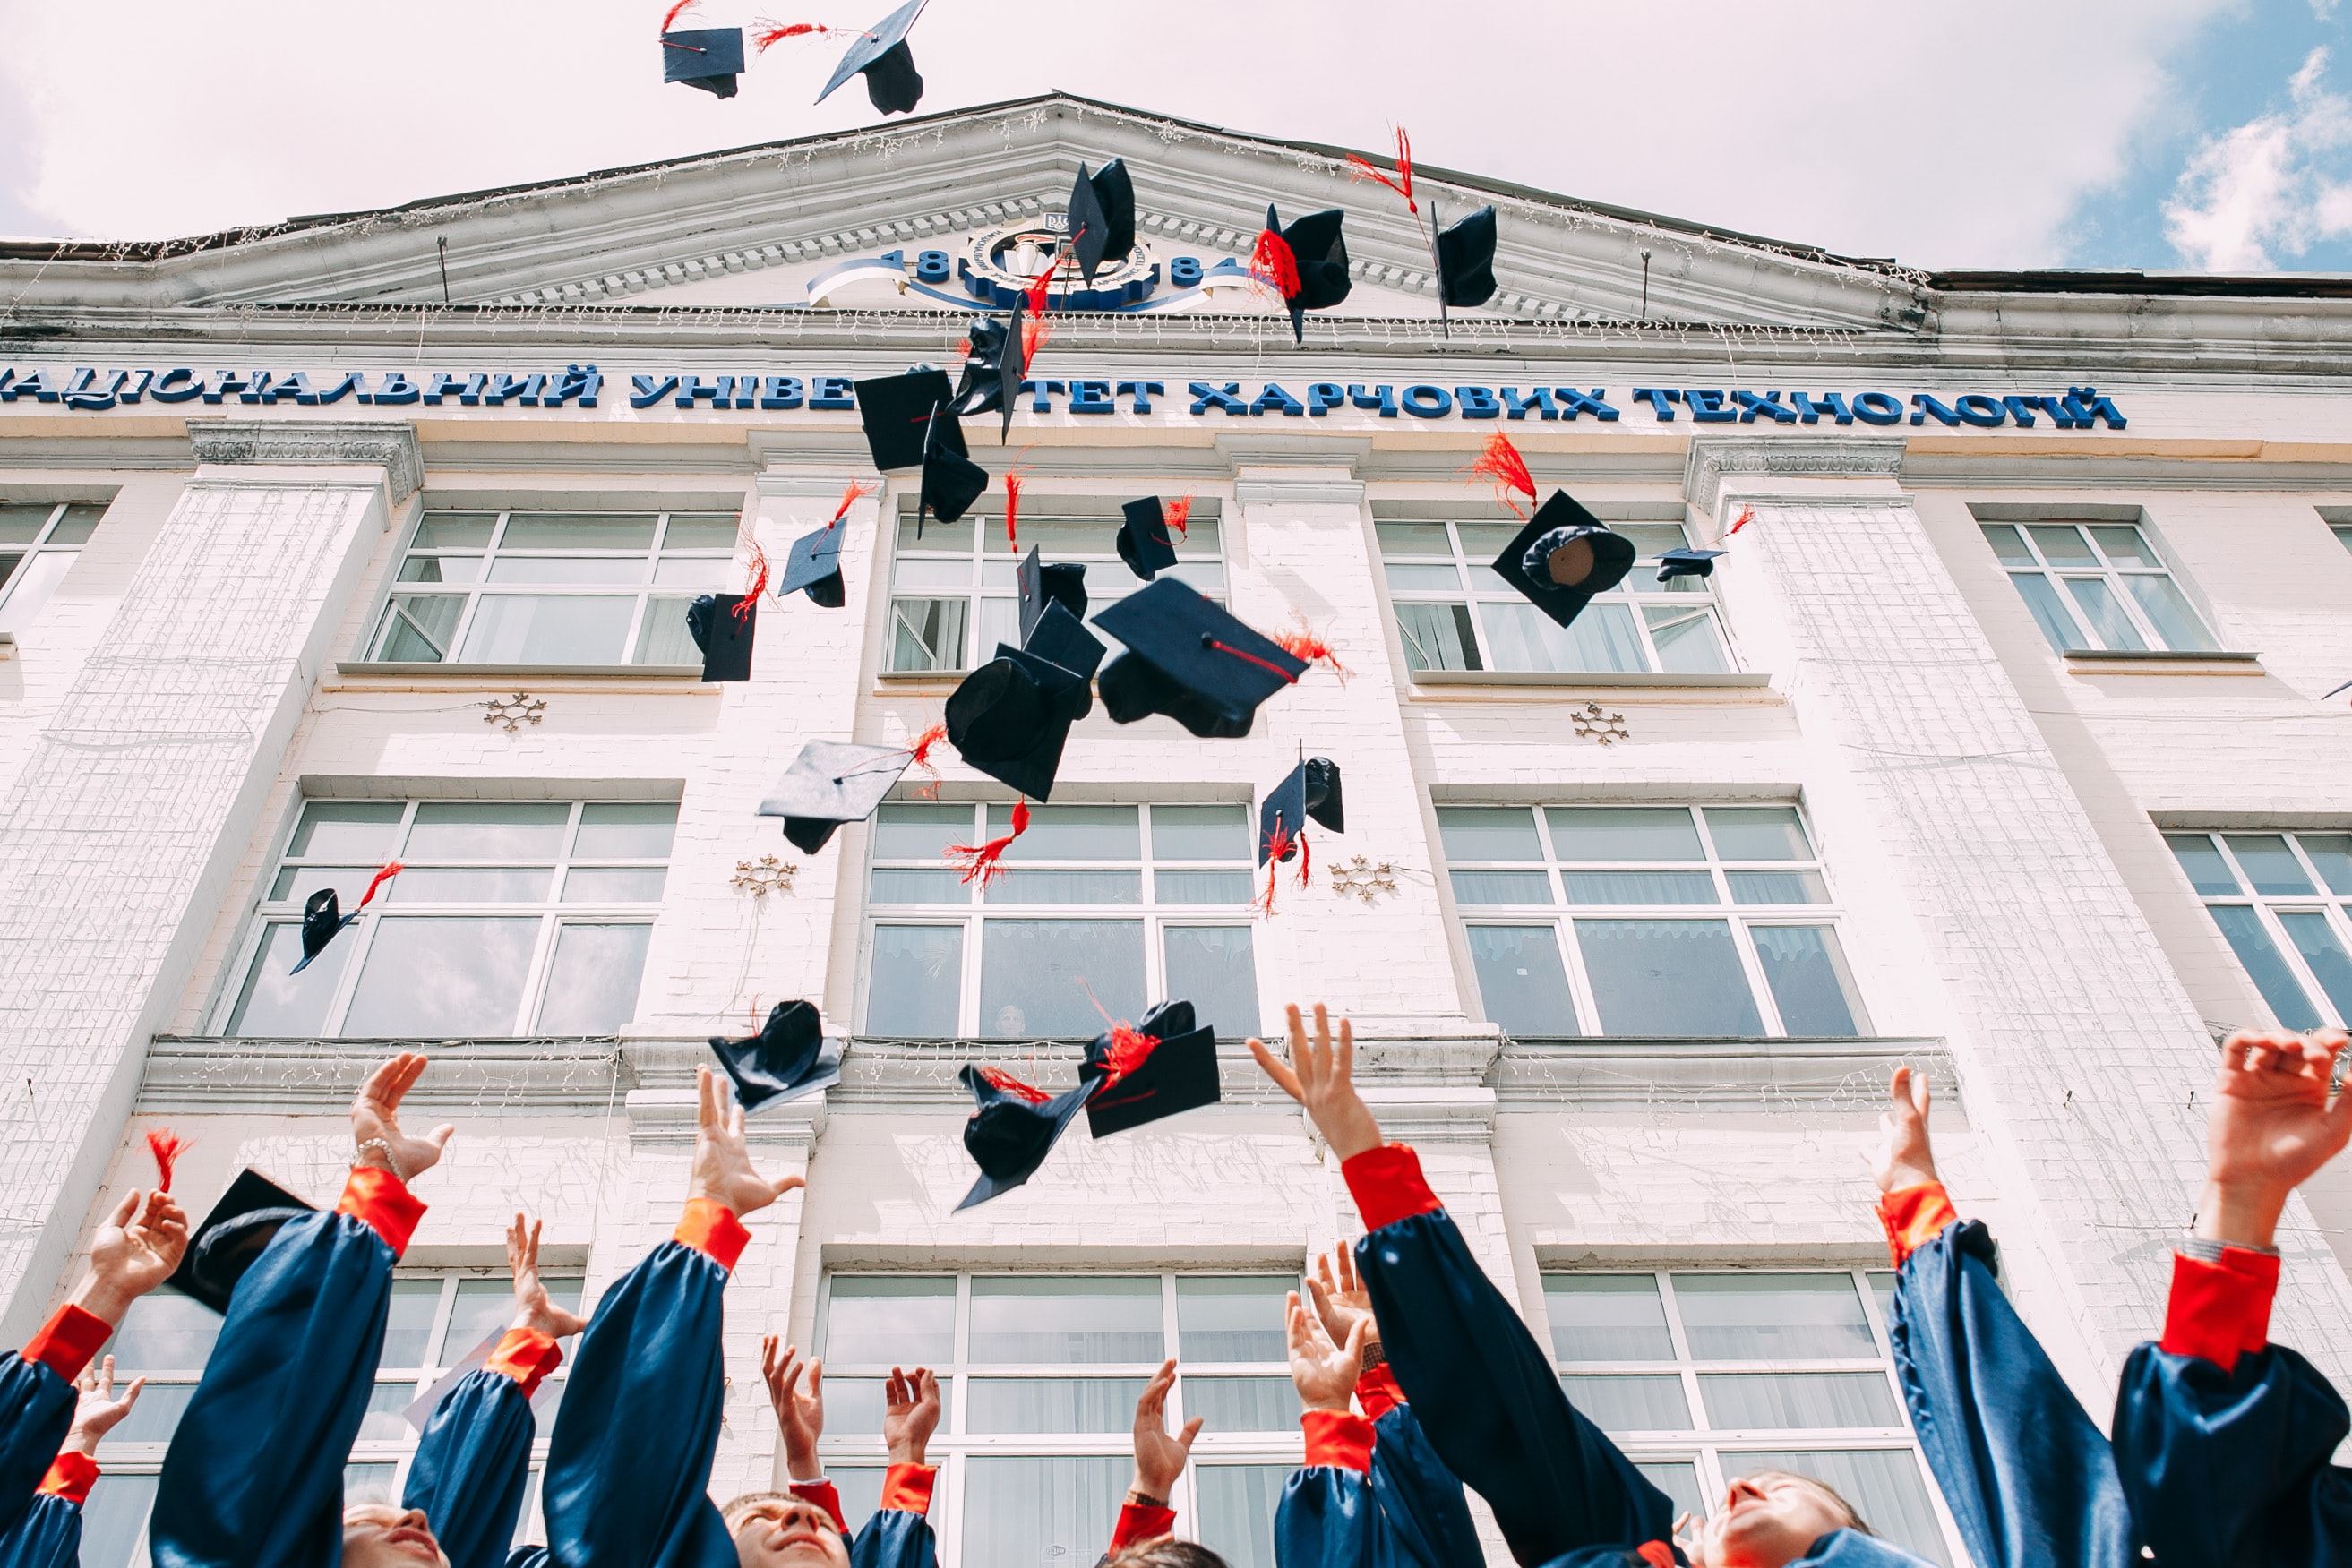 Picture of a crowd of students throwing their graduation caps up in the air outside a university